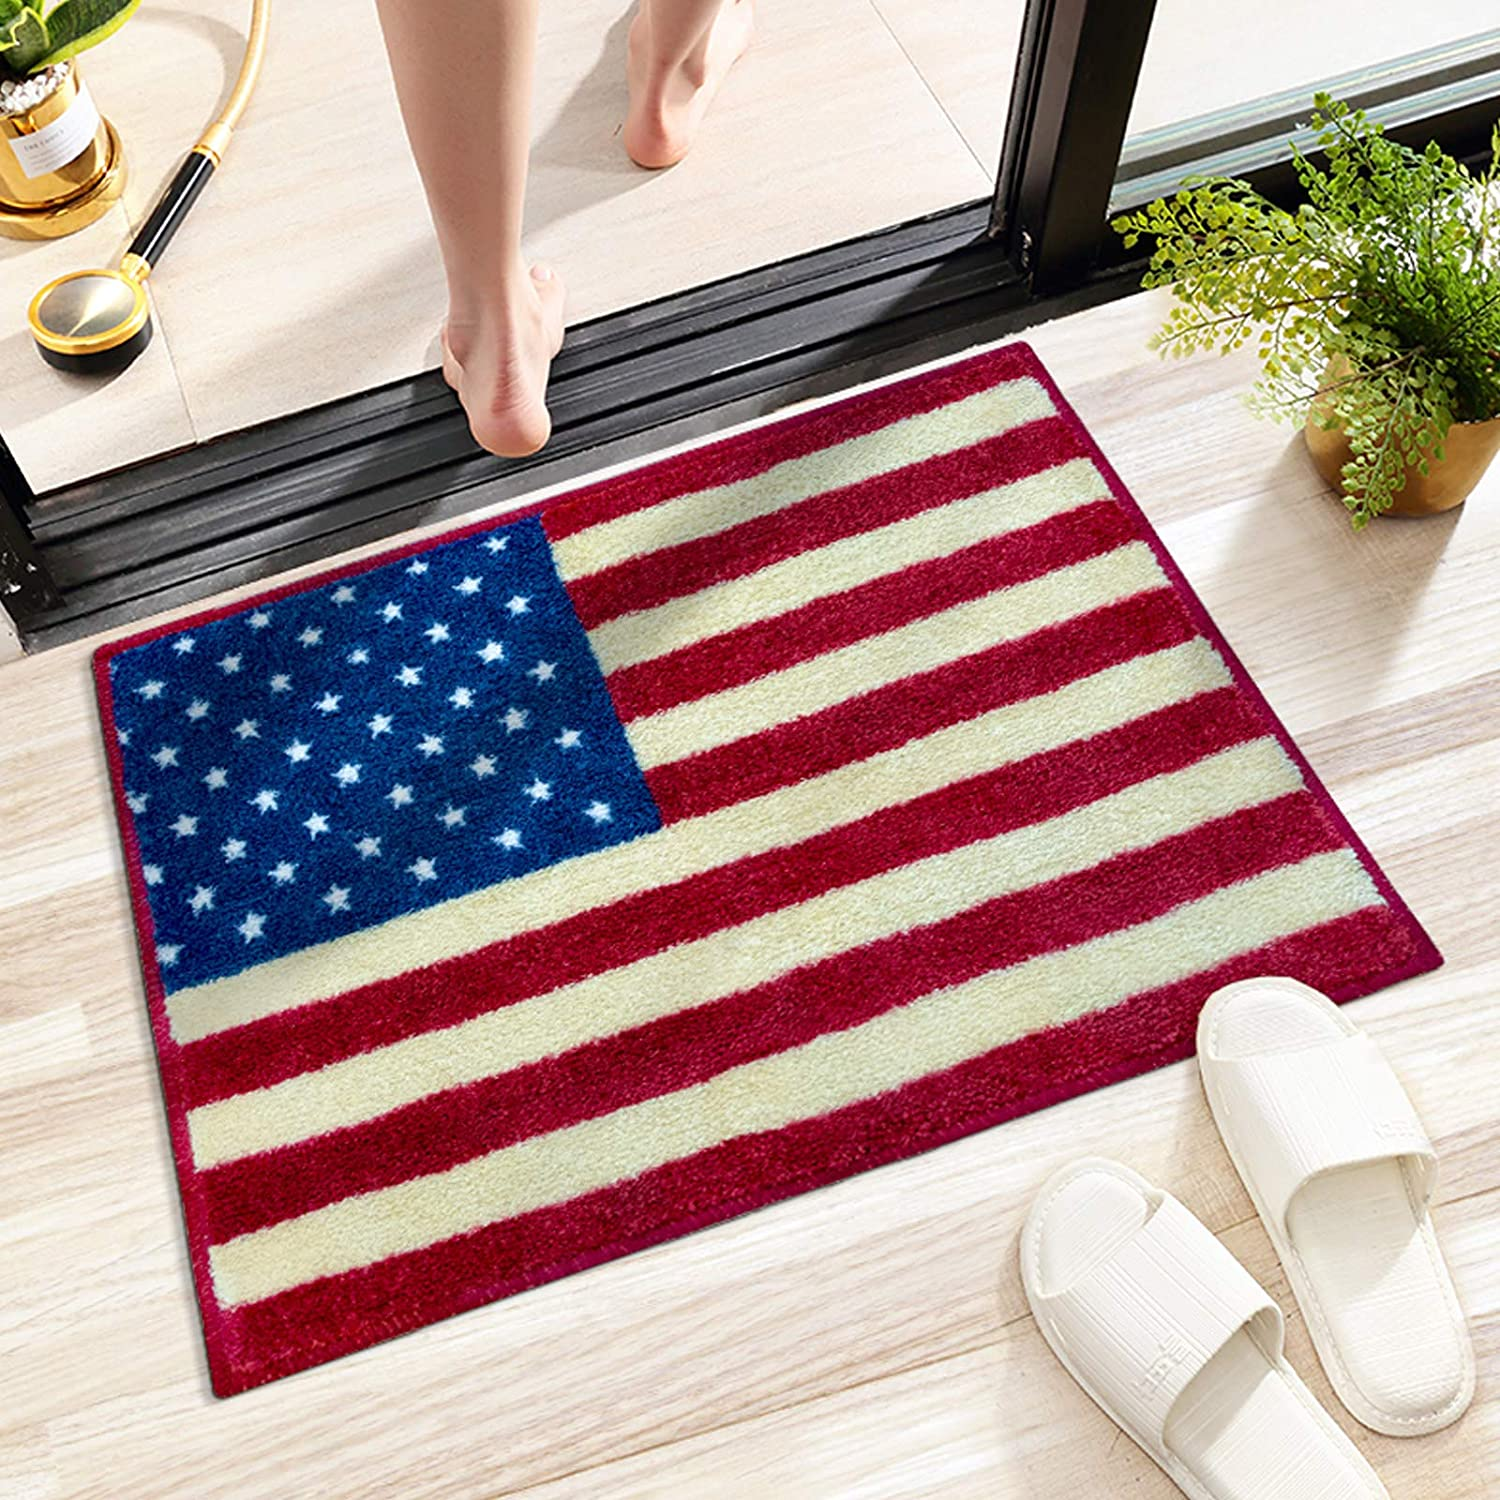 Topics on Brand new TV American Flag Bath Mats Red White Bathroom Blue and Rugs Small f